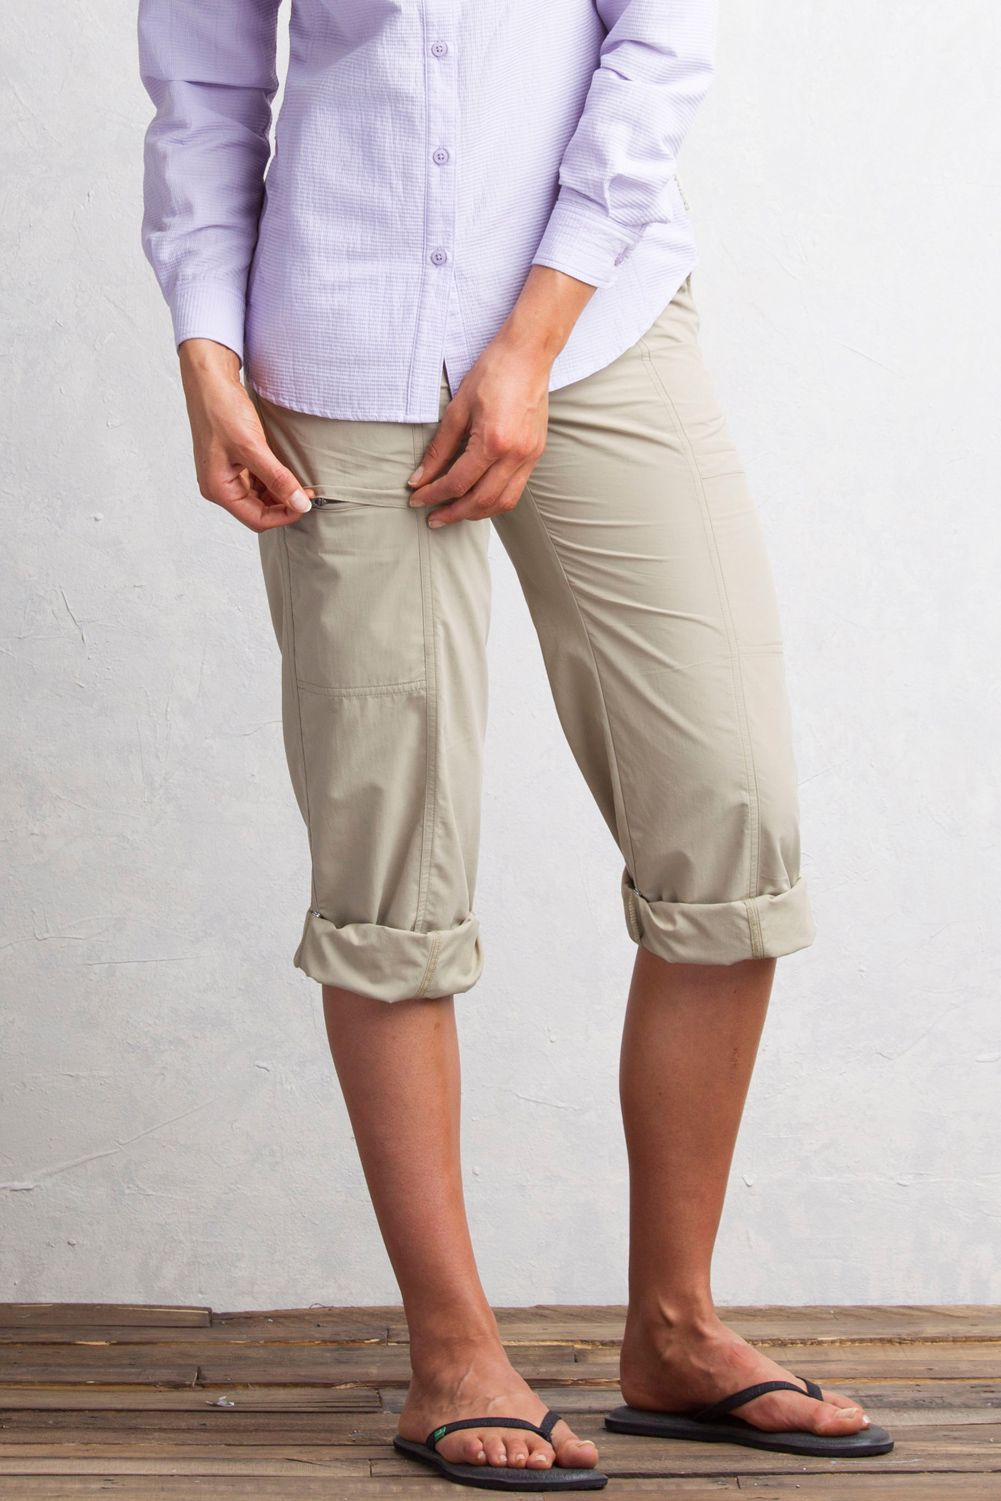 f8c84036d2a ExOfficio Sol Cool Nomad Pants roll up to capri style pants. Sol Cool  ExOfficio travel pants for women provide sun protection